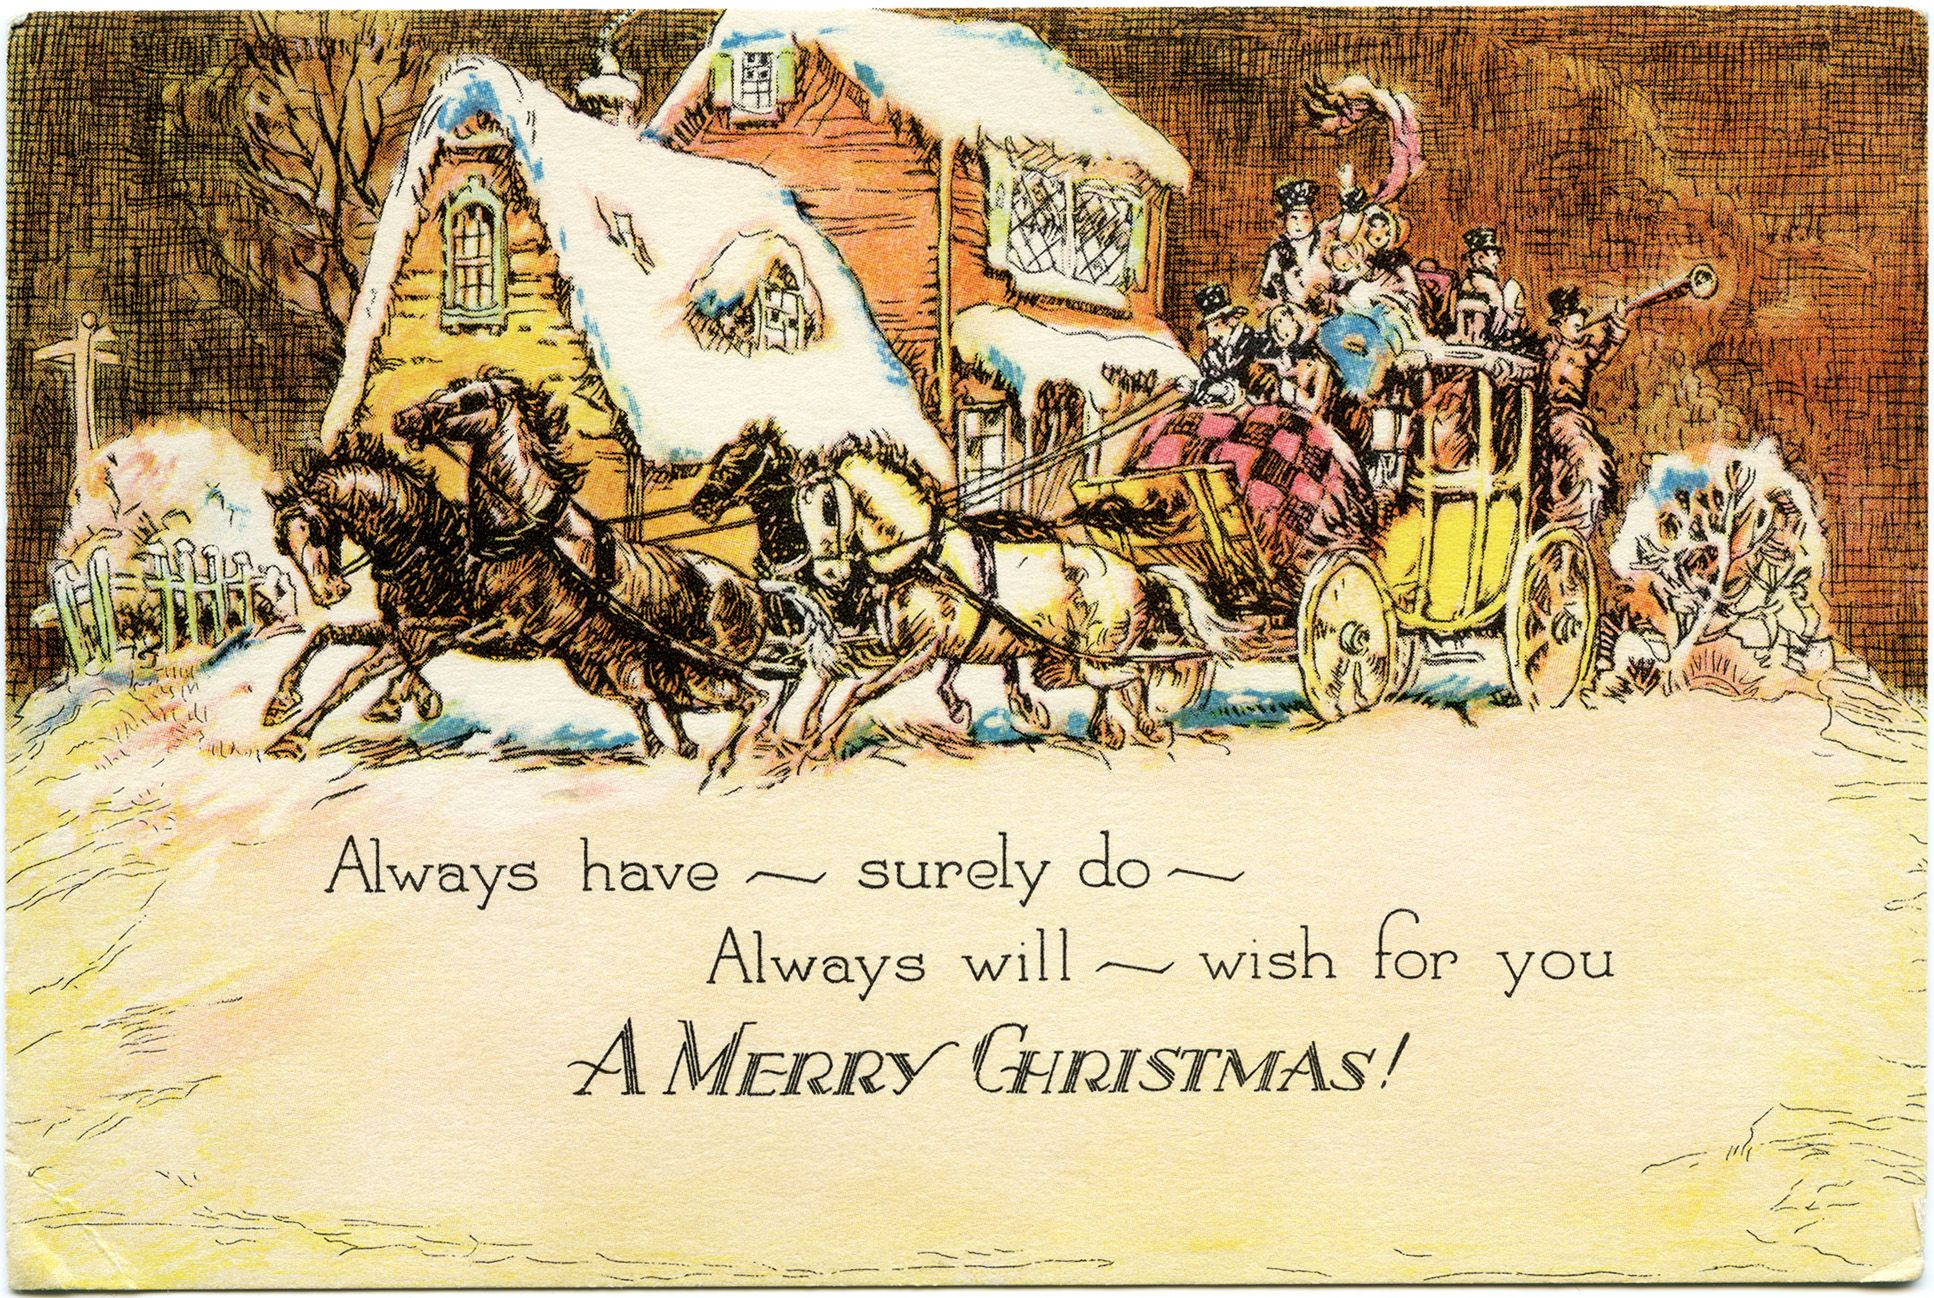 Old-Fashioned Winter Christmas Scenes | ... , old fashioned ...